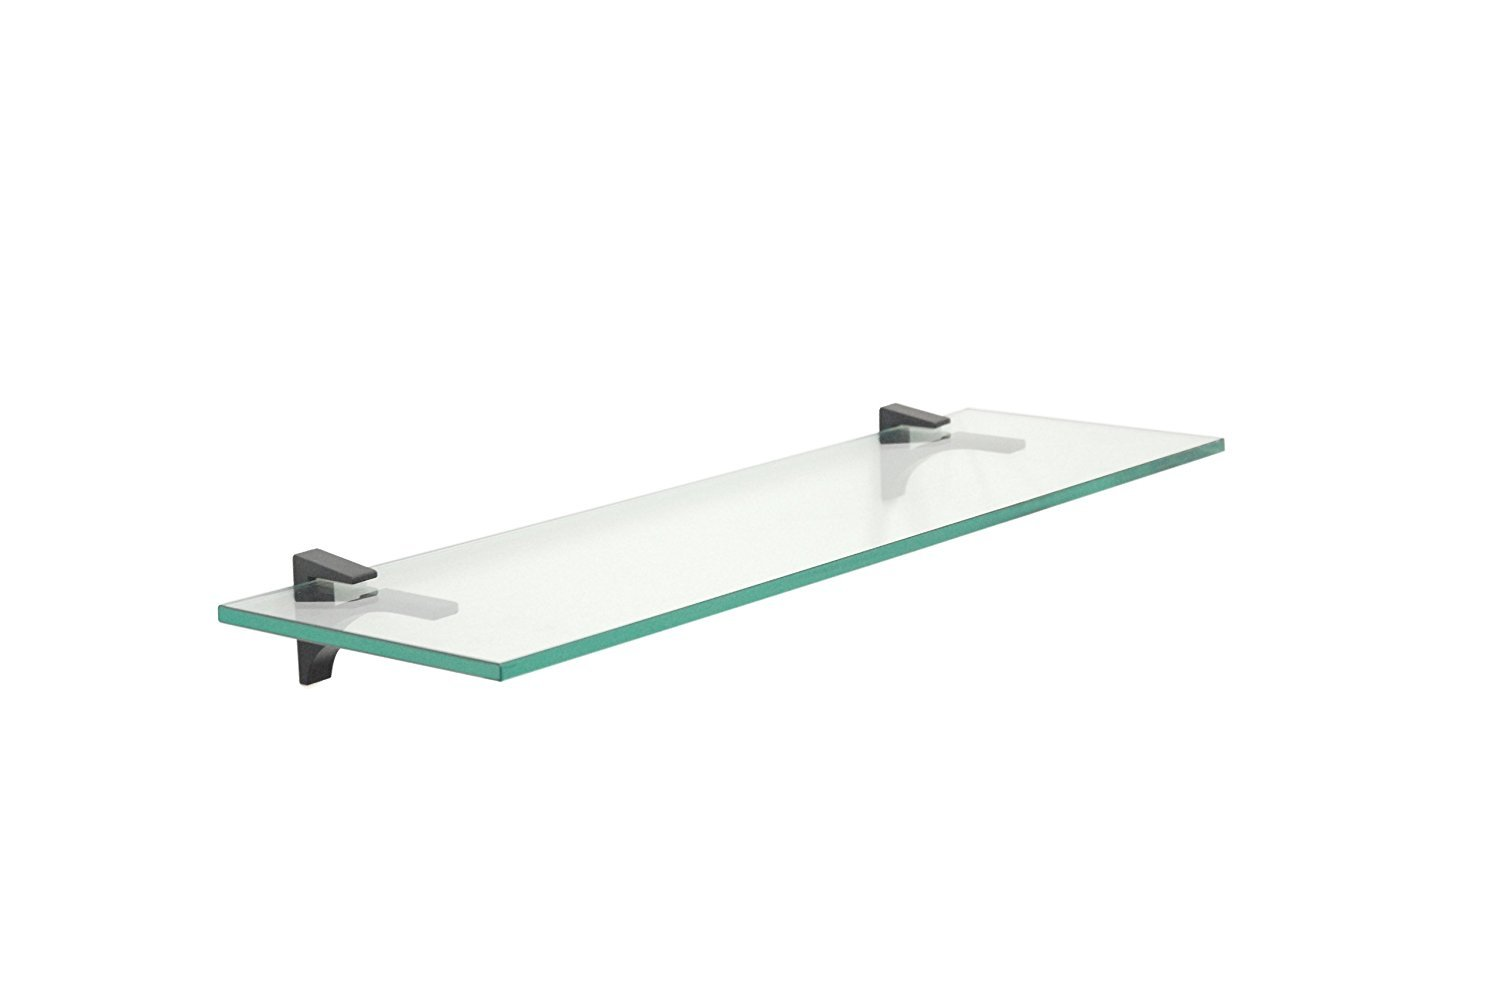 spancraft cardinal floating glass shelf inch home kitchen wall storage unit shelves the best roll out ikea shoe cupboard hemnes heavy duty shelving london diy drywall anchors for